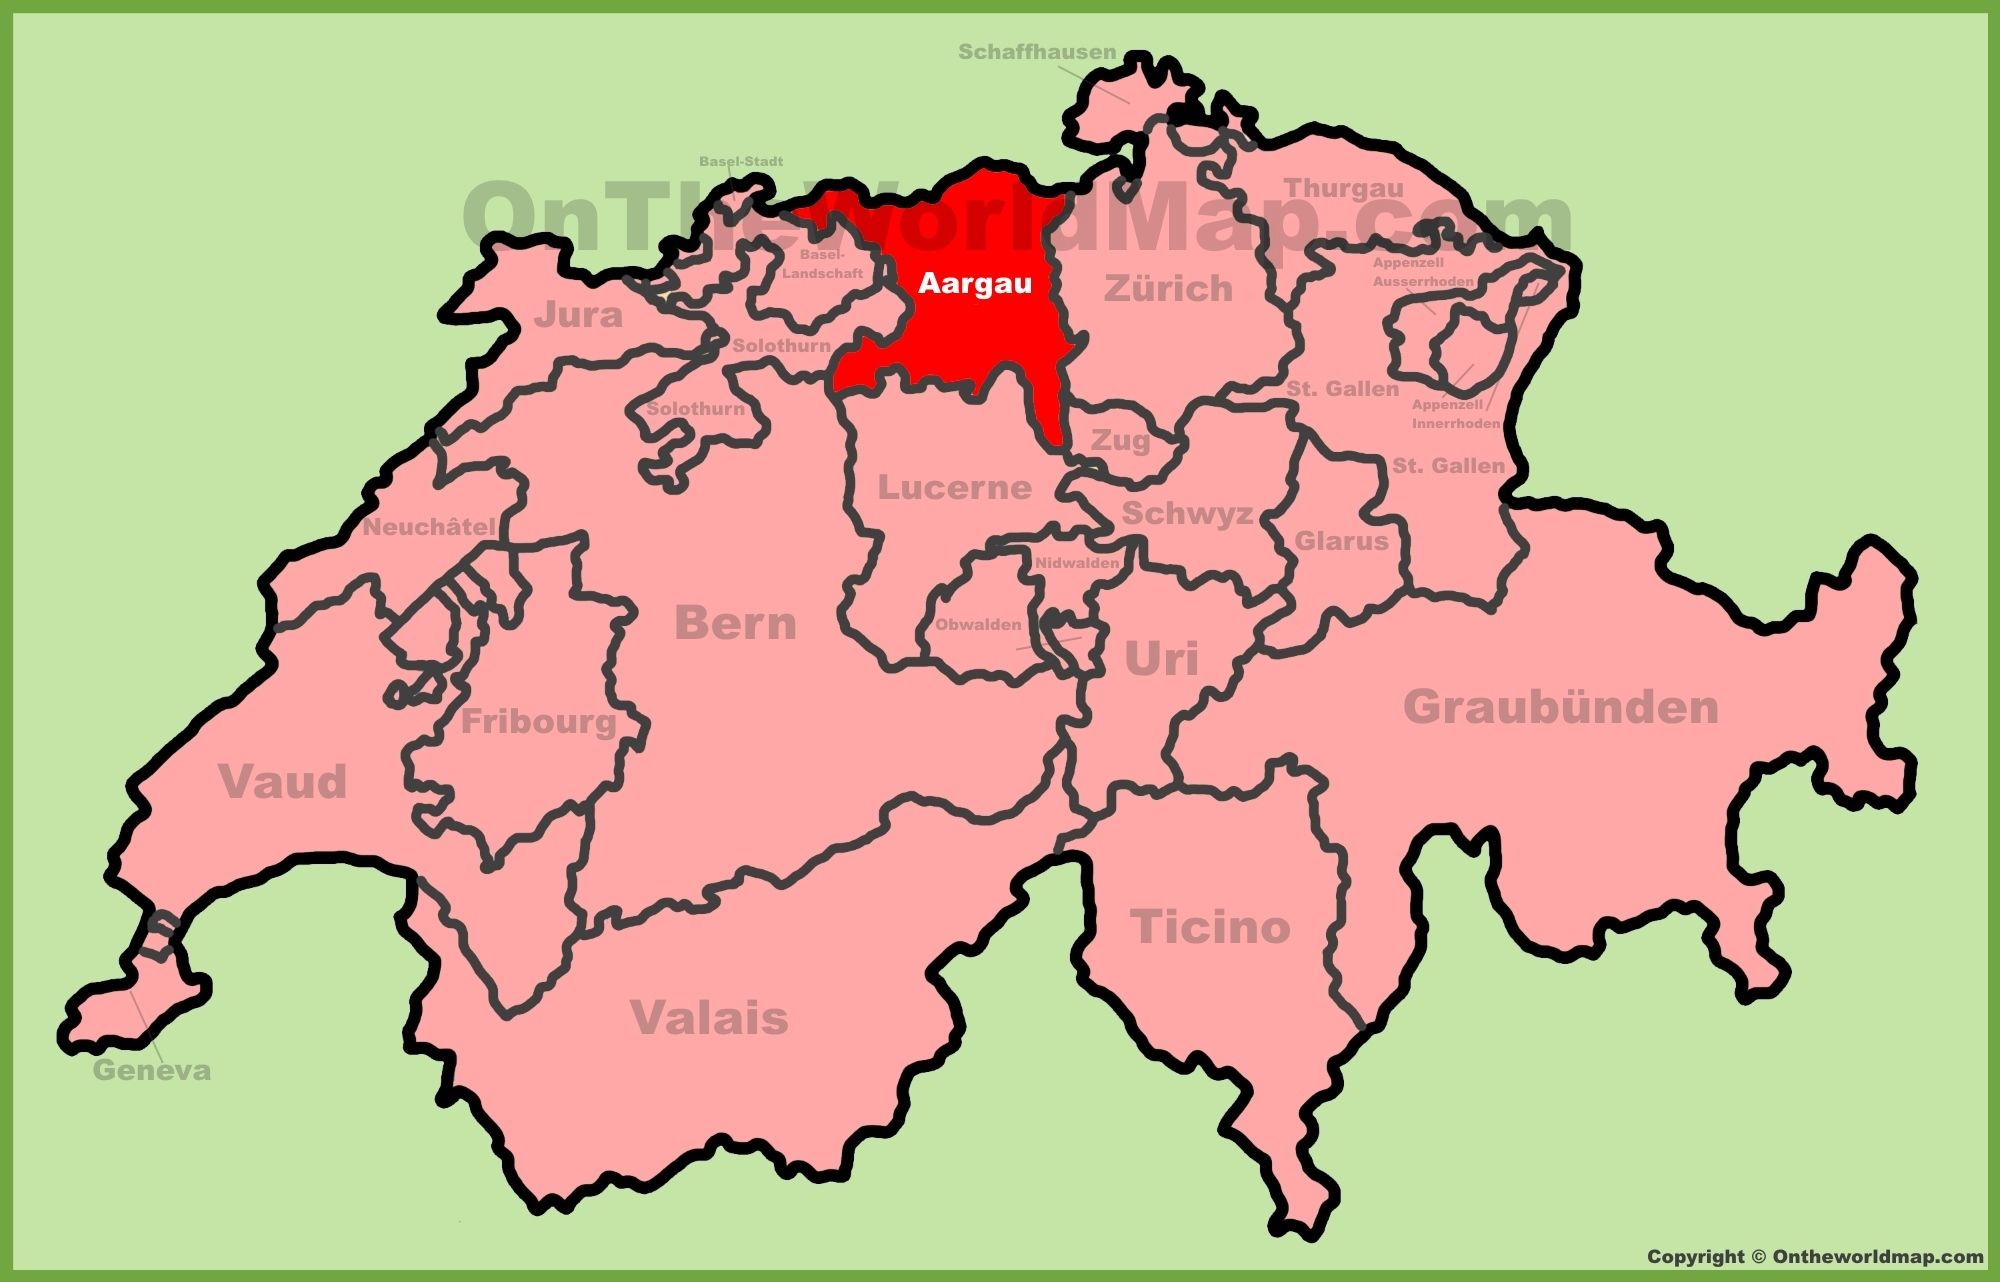 Canton of Aargau location on the Switzerland map